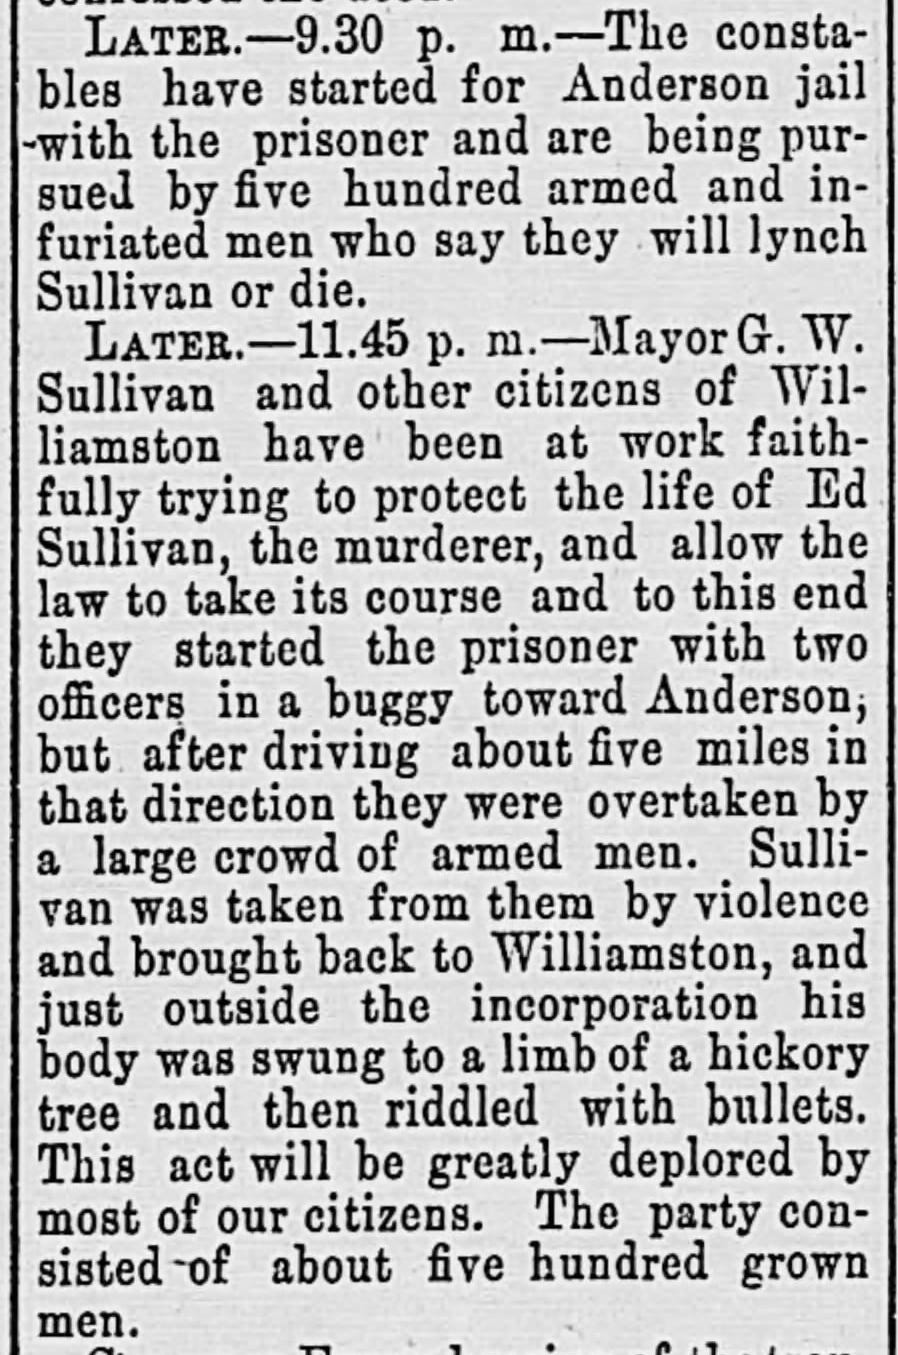 Newspaper article on Edward Sullivan's murder in the Dec. 19, 1894 issue of The Abbeville Press and Banner.